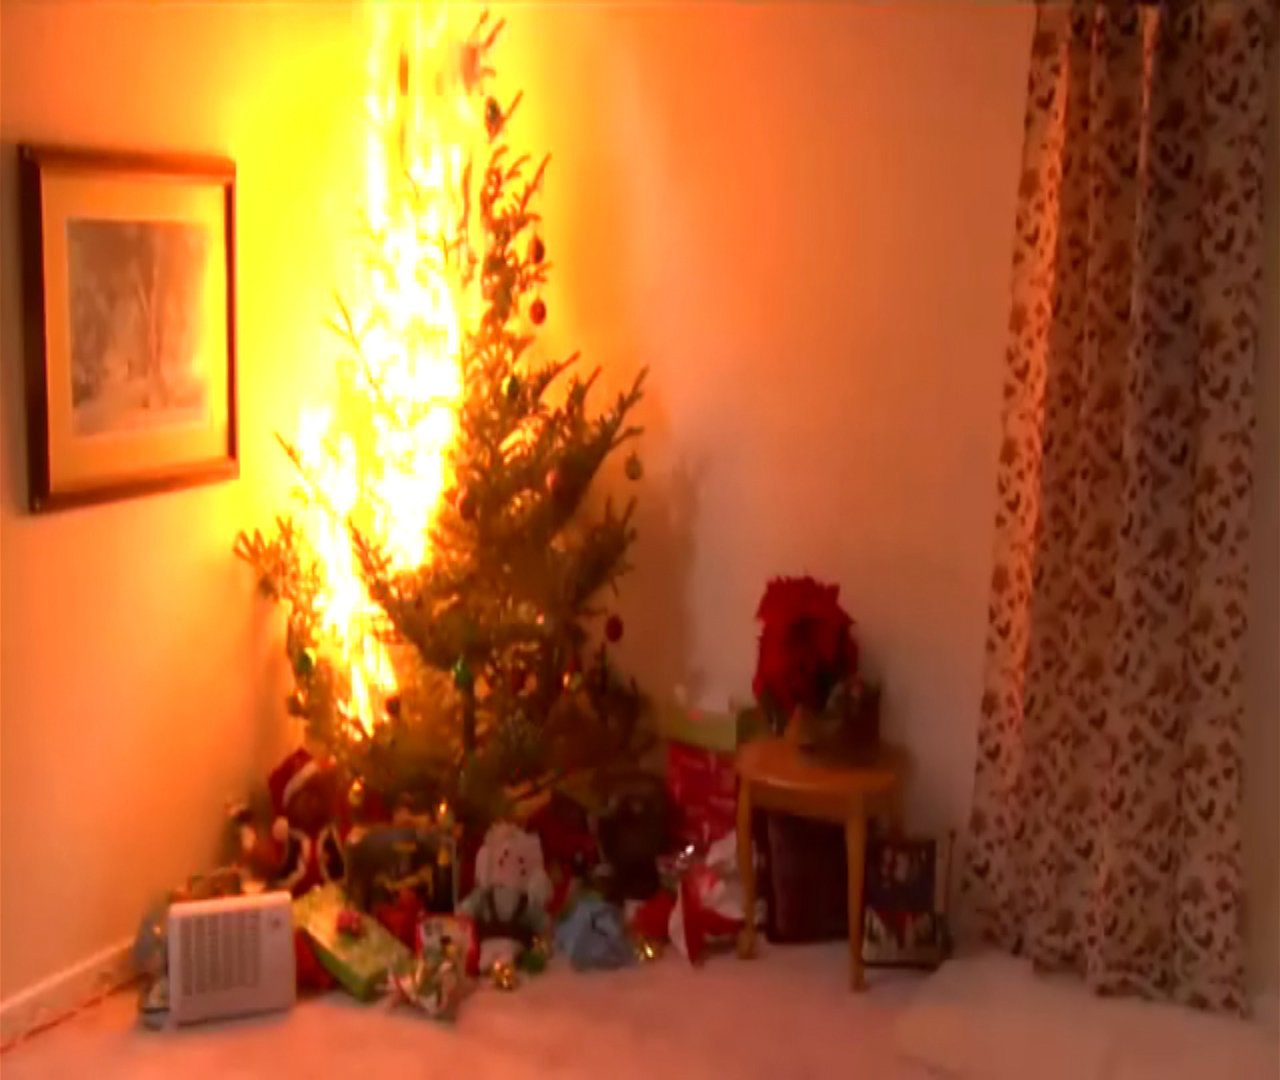 Preventing Holiday Fires  Erie News Now  WICU and WSEE